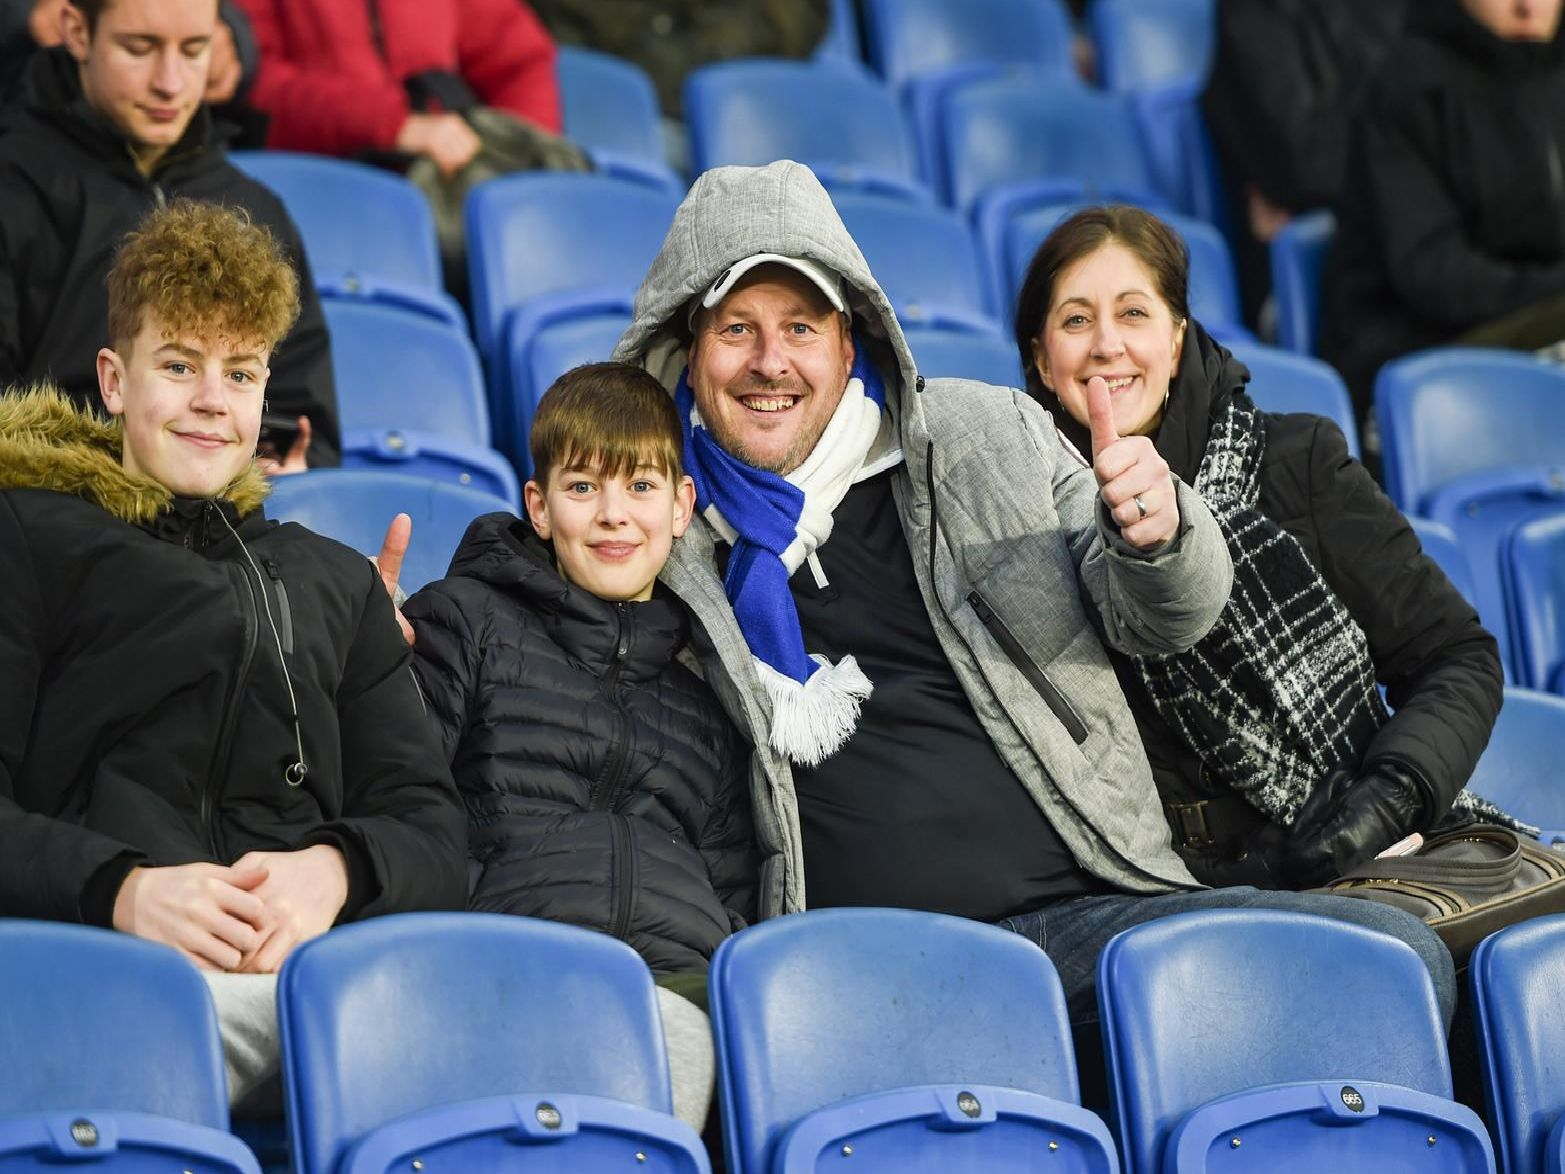 Brighton fans pictured at the Burnley match